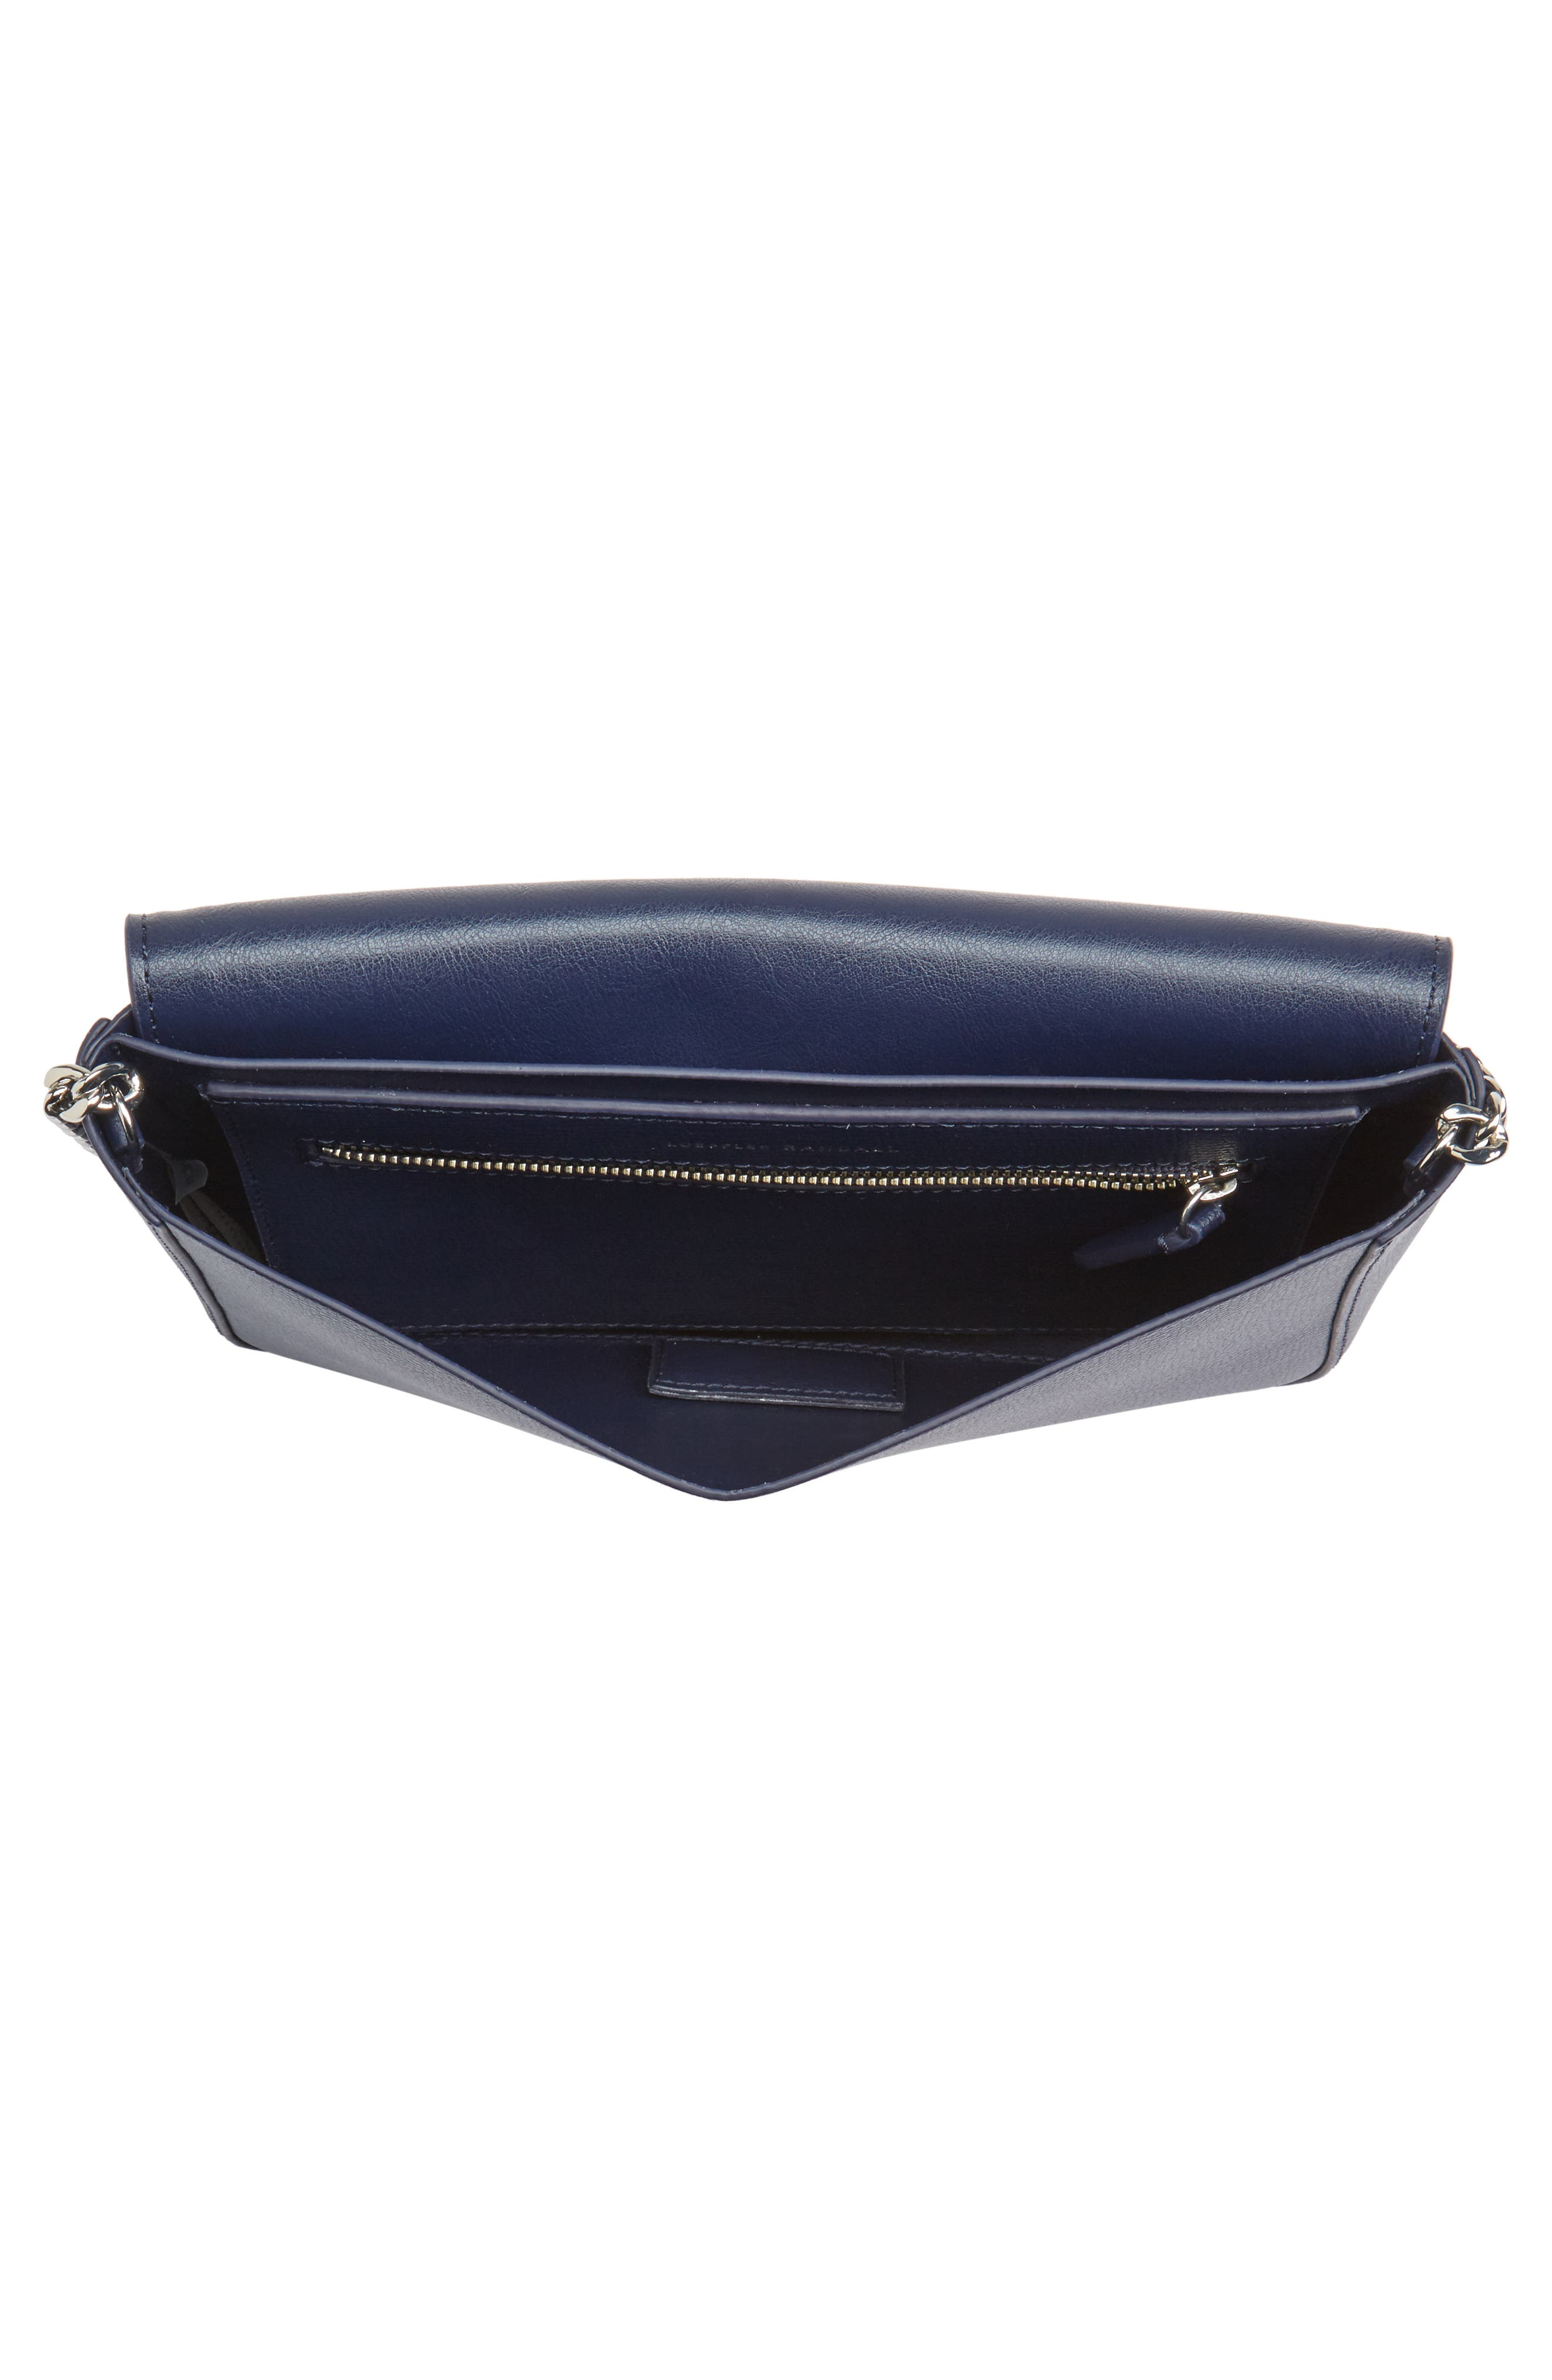 Lock Leather Flap Clutch/Shoulder Bag,                             Alternate thumbnail 4, color,                             Eclipse/ Multi